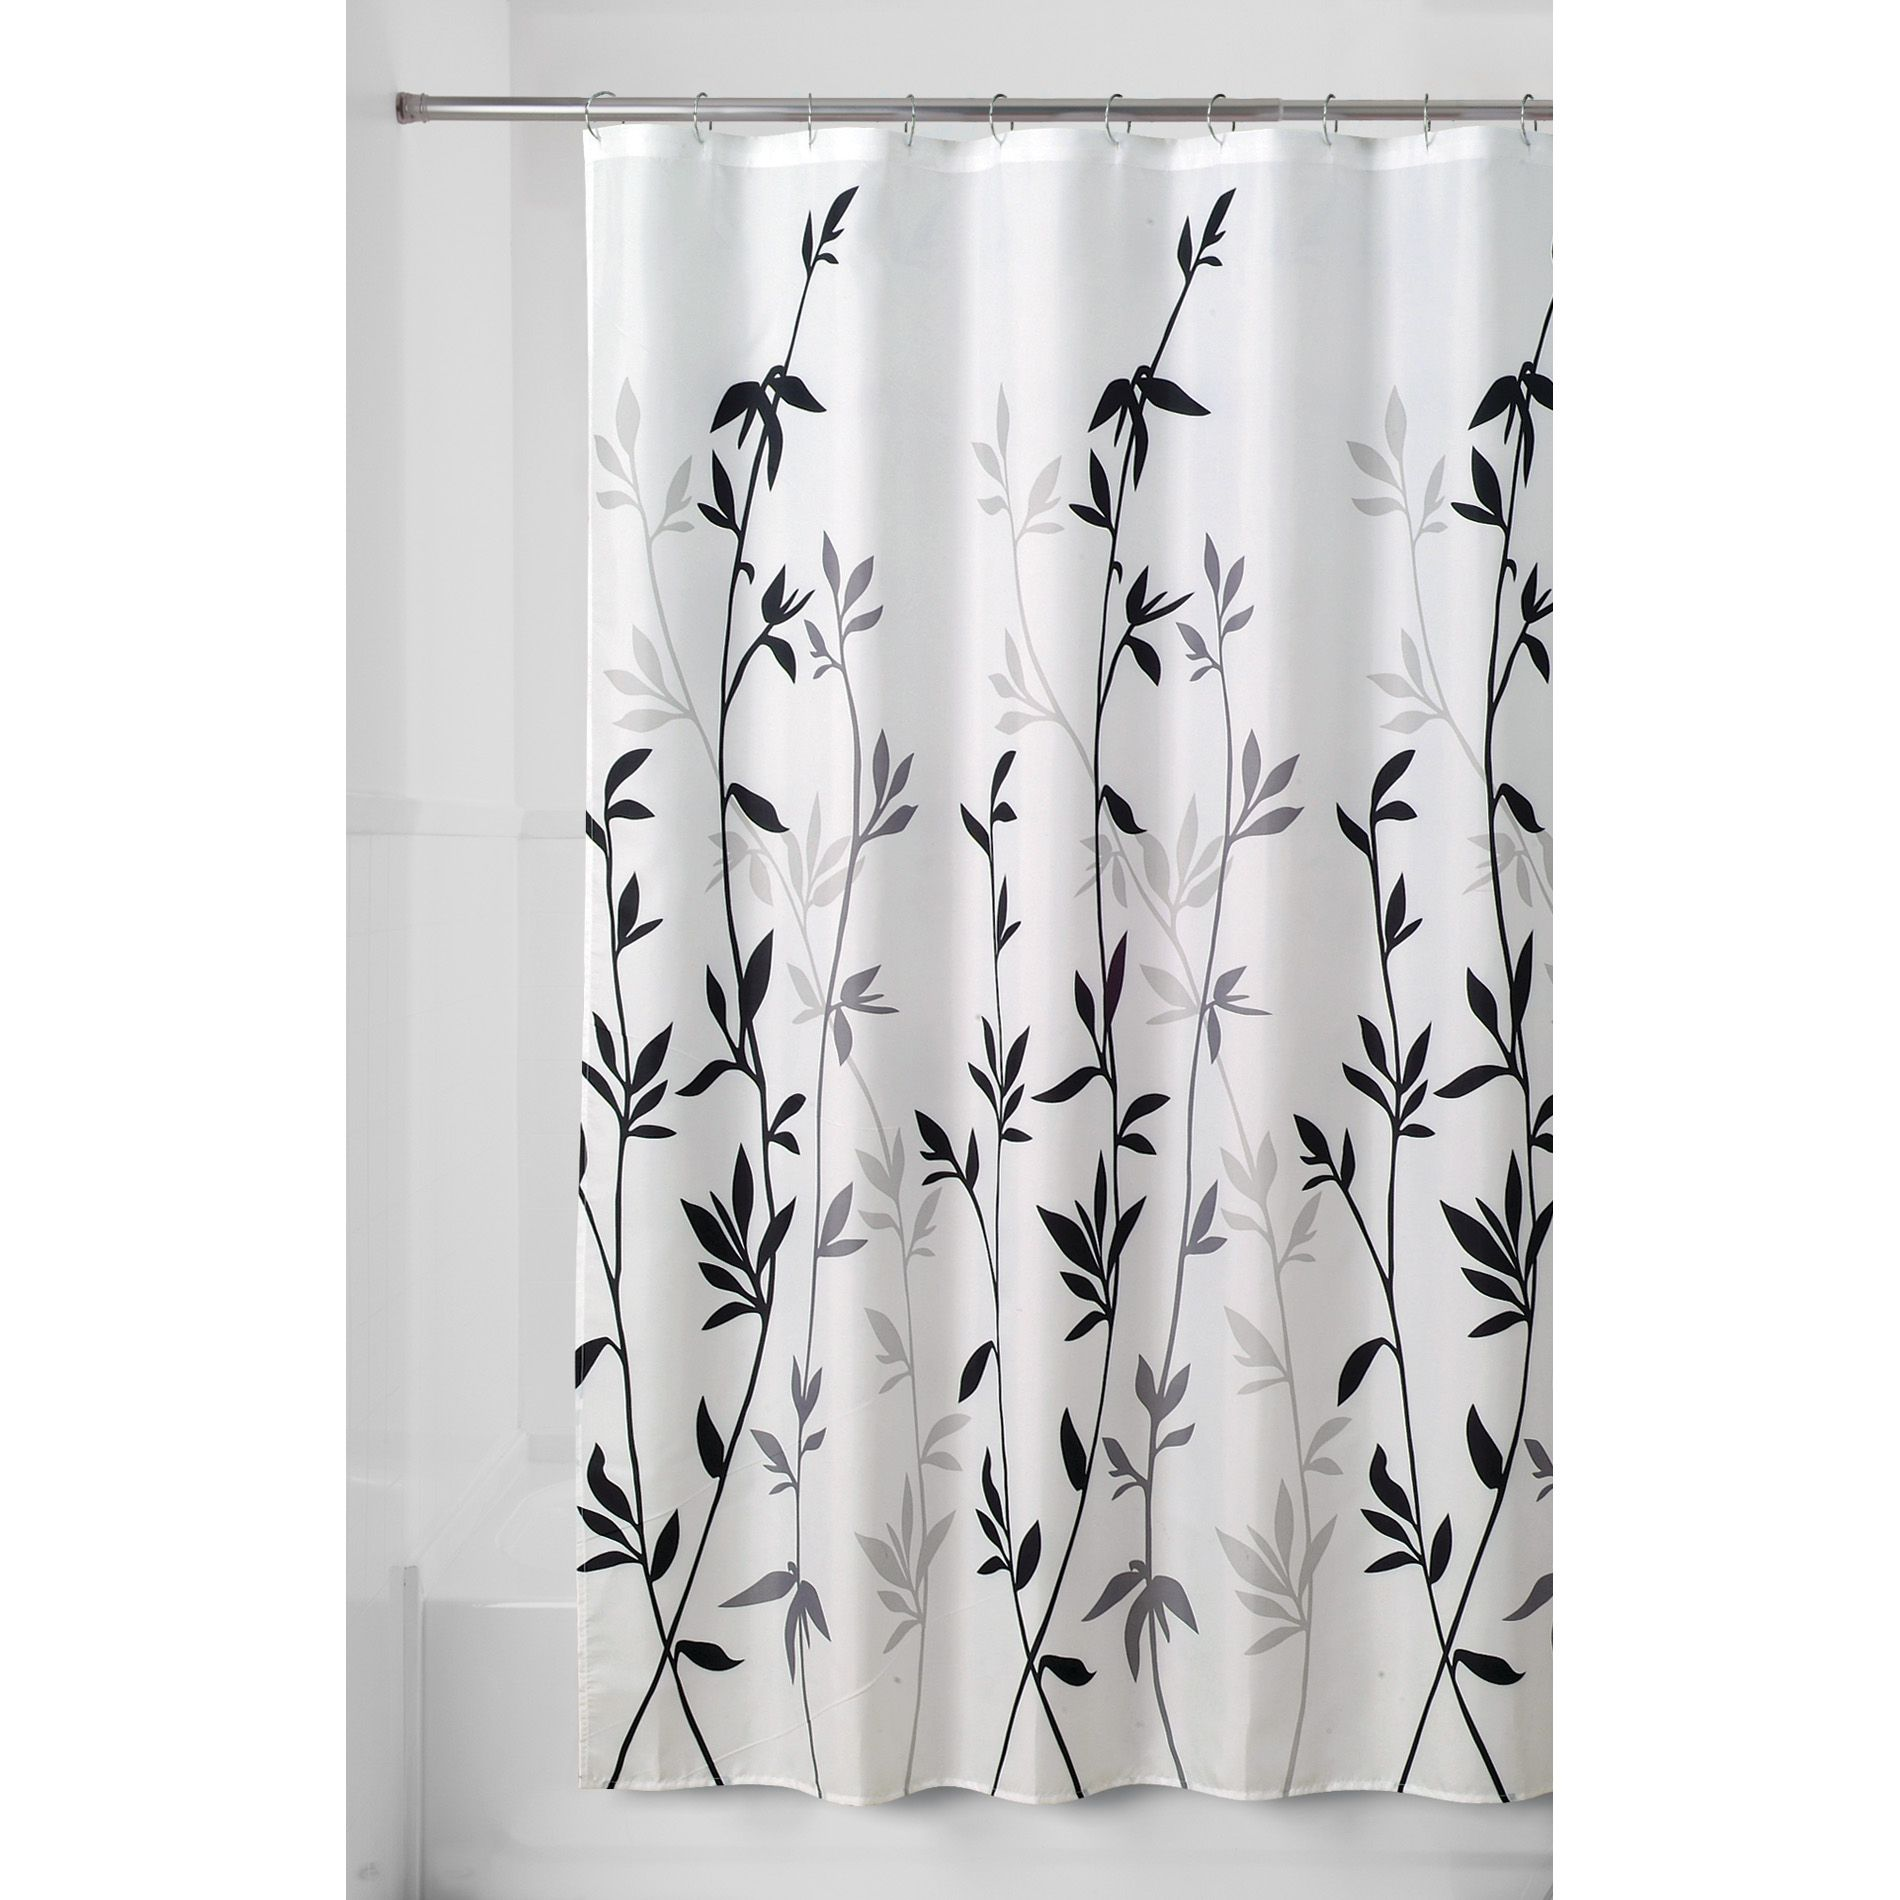 Essential Home Shower Curtain Bamboo Leaves Fabric Home